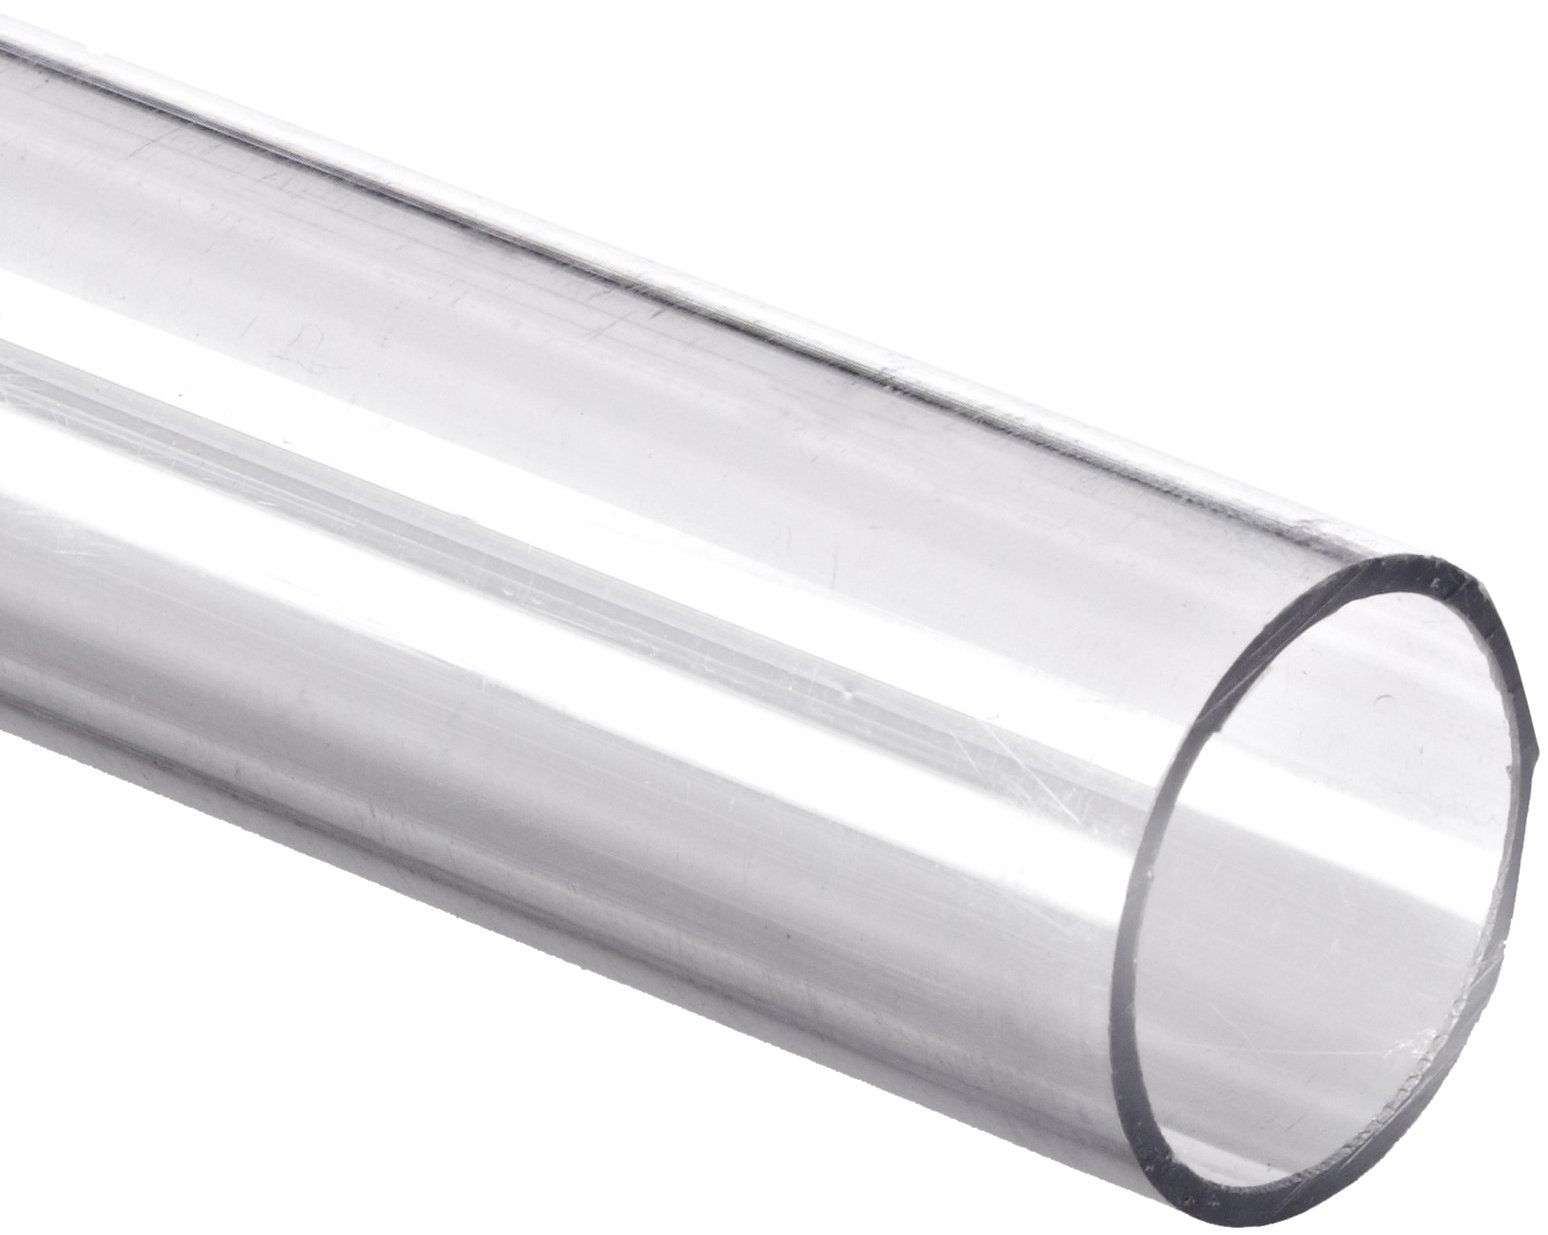 Polycarbonate Tubing, 1/4'' ID x 3/8'' OD x 1/16'' Wall, Clear Color 72'' L